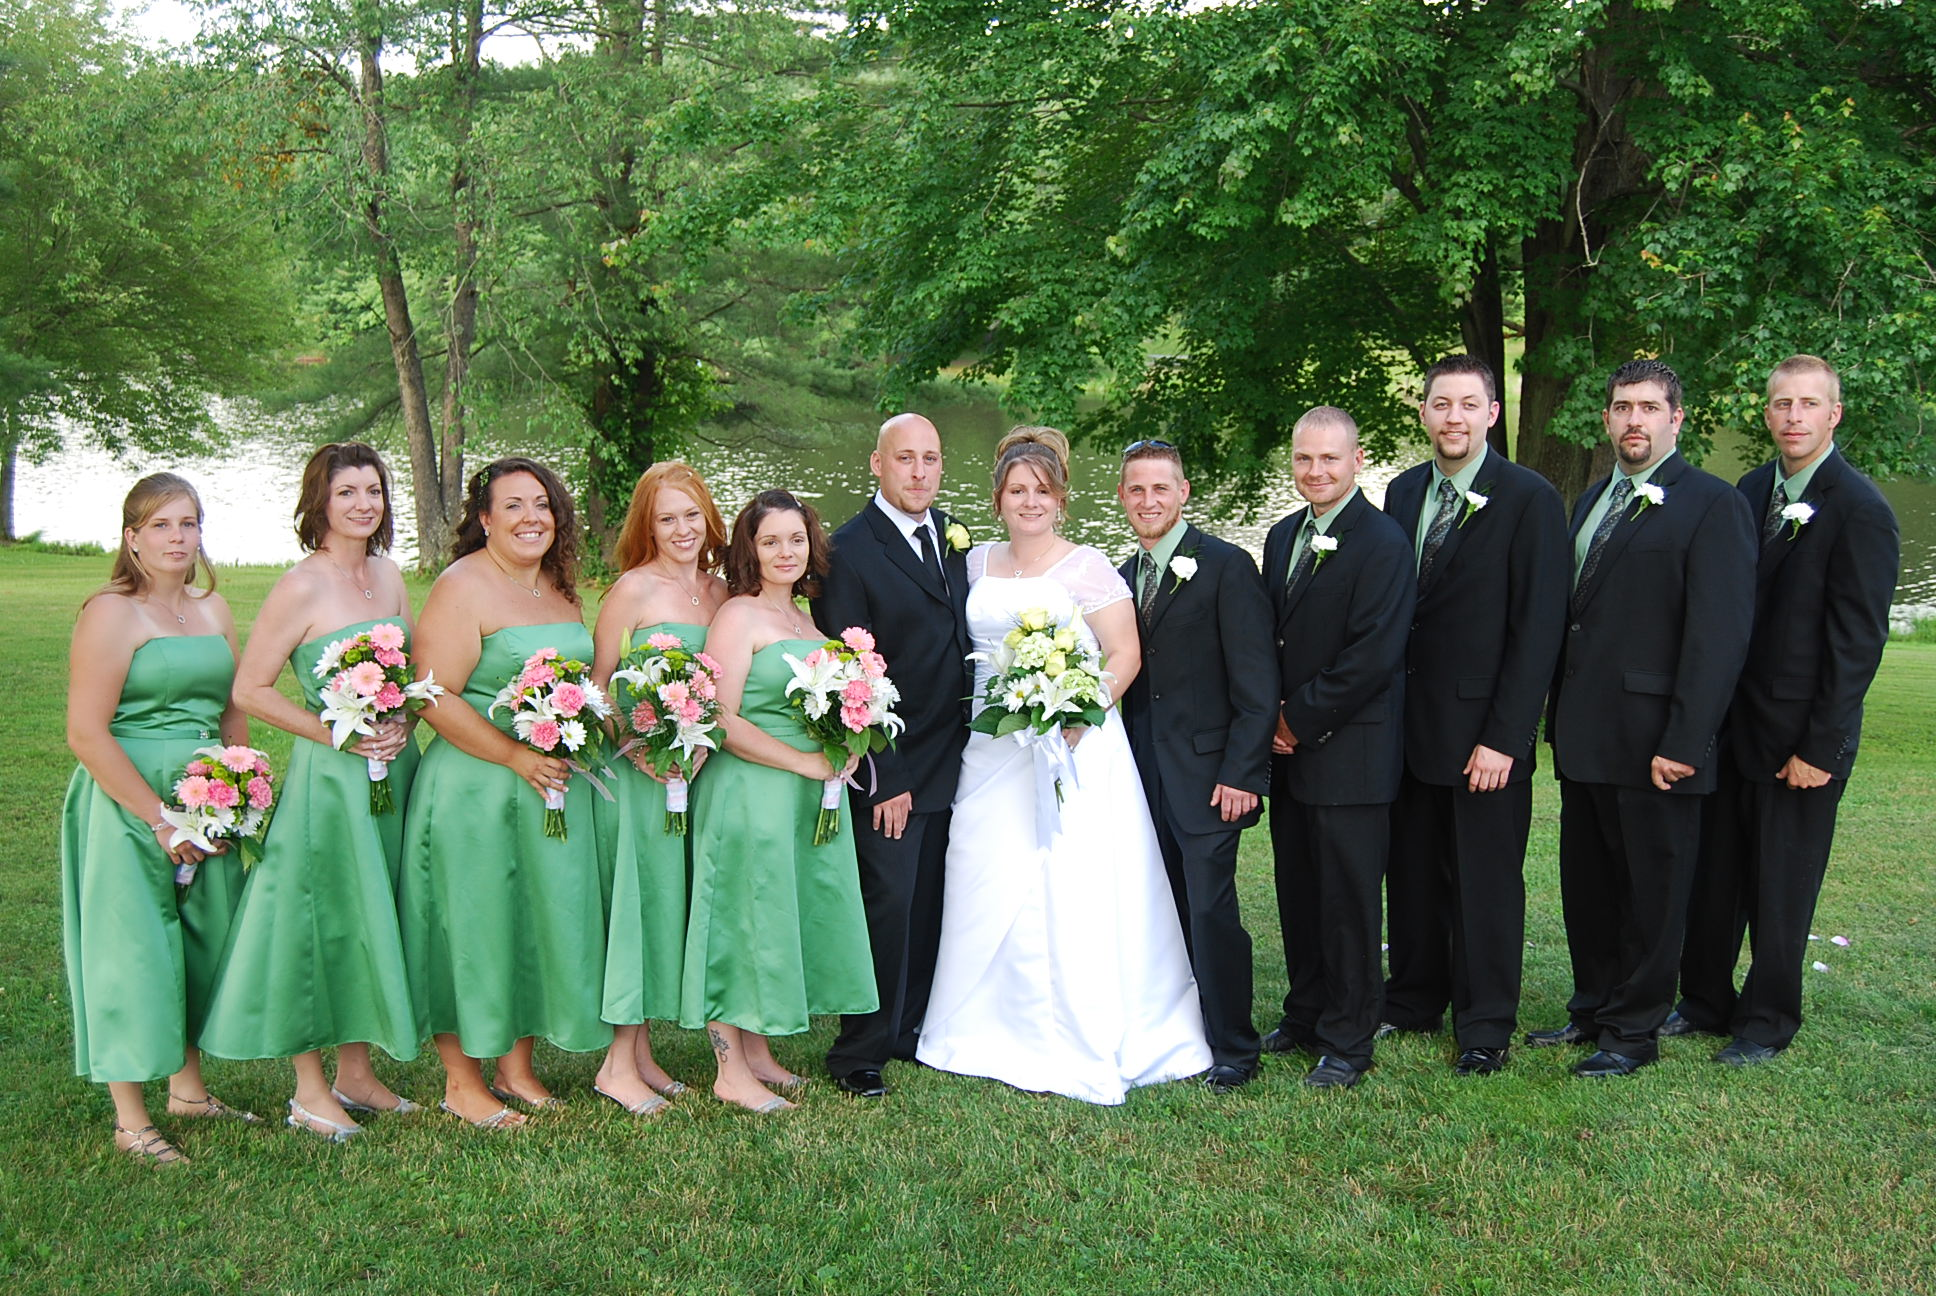 Irish theme wedding ideas traditions song list albany wedding irish theme wedding ideas traditions song list albany wedding dj sweet 16 dj reunion party mitzvah dj of troy schenectady saratoga dj buycottarizona Images